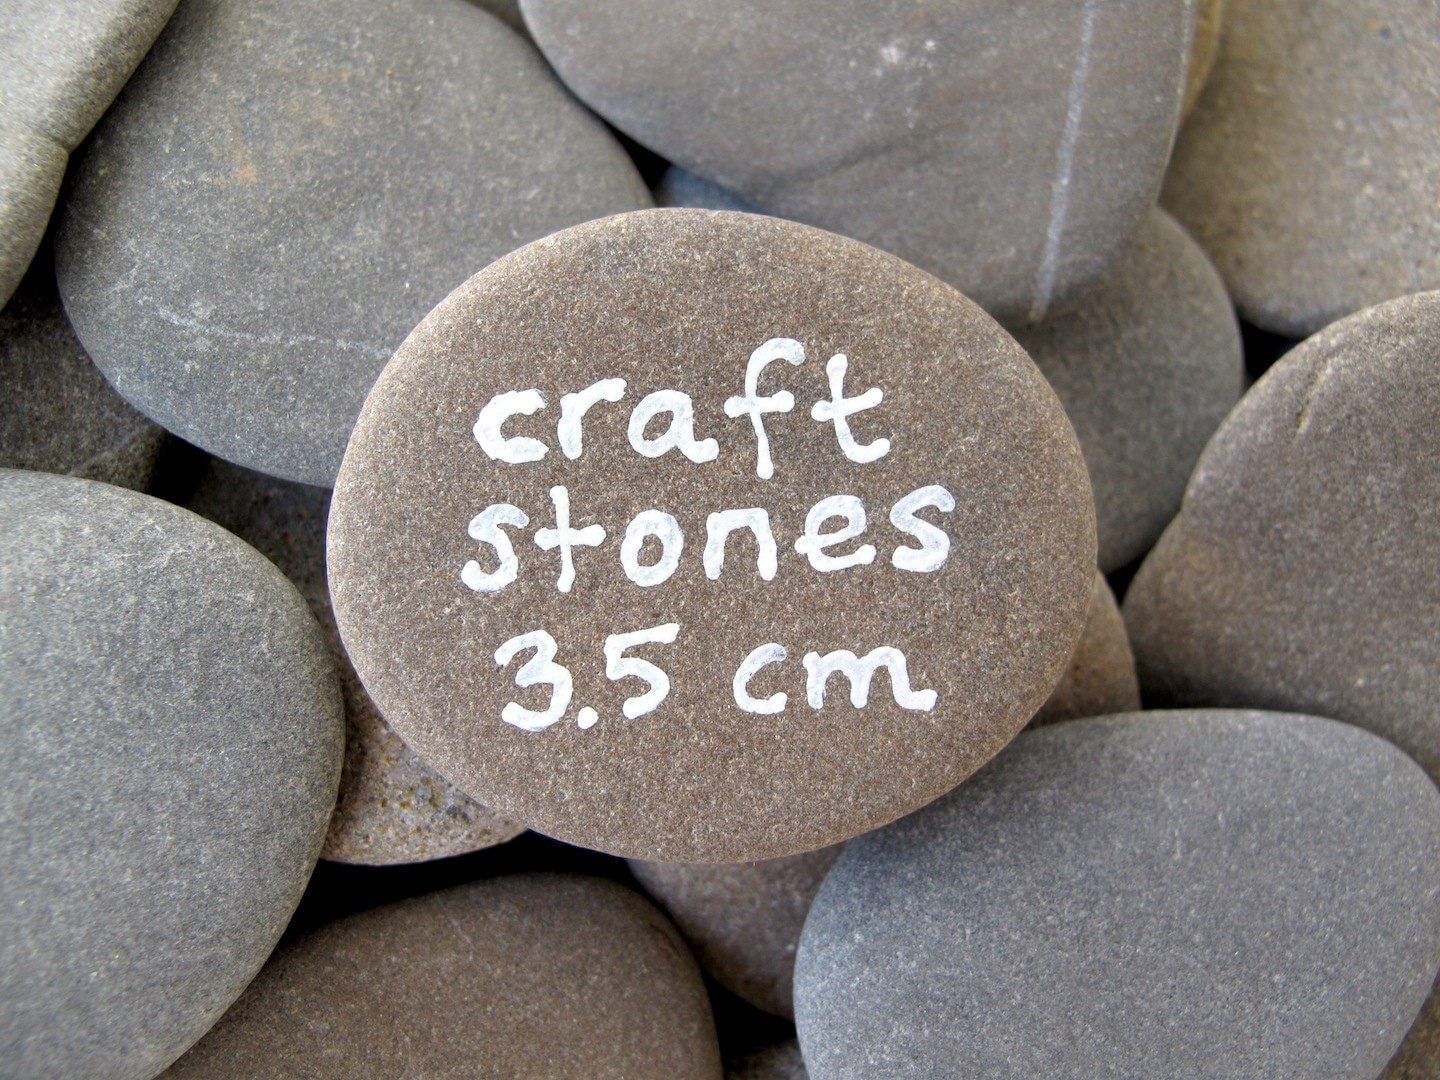 Craft stones 50 flat rocks beach stone supplies rocks to for Crafts using stones